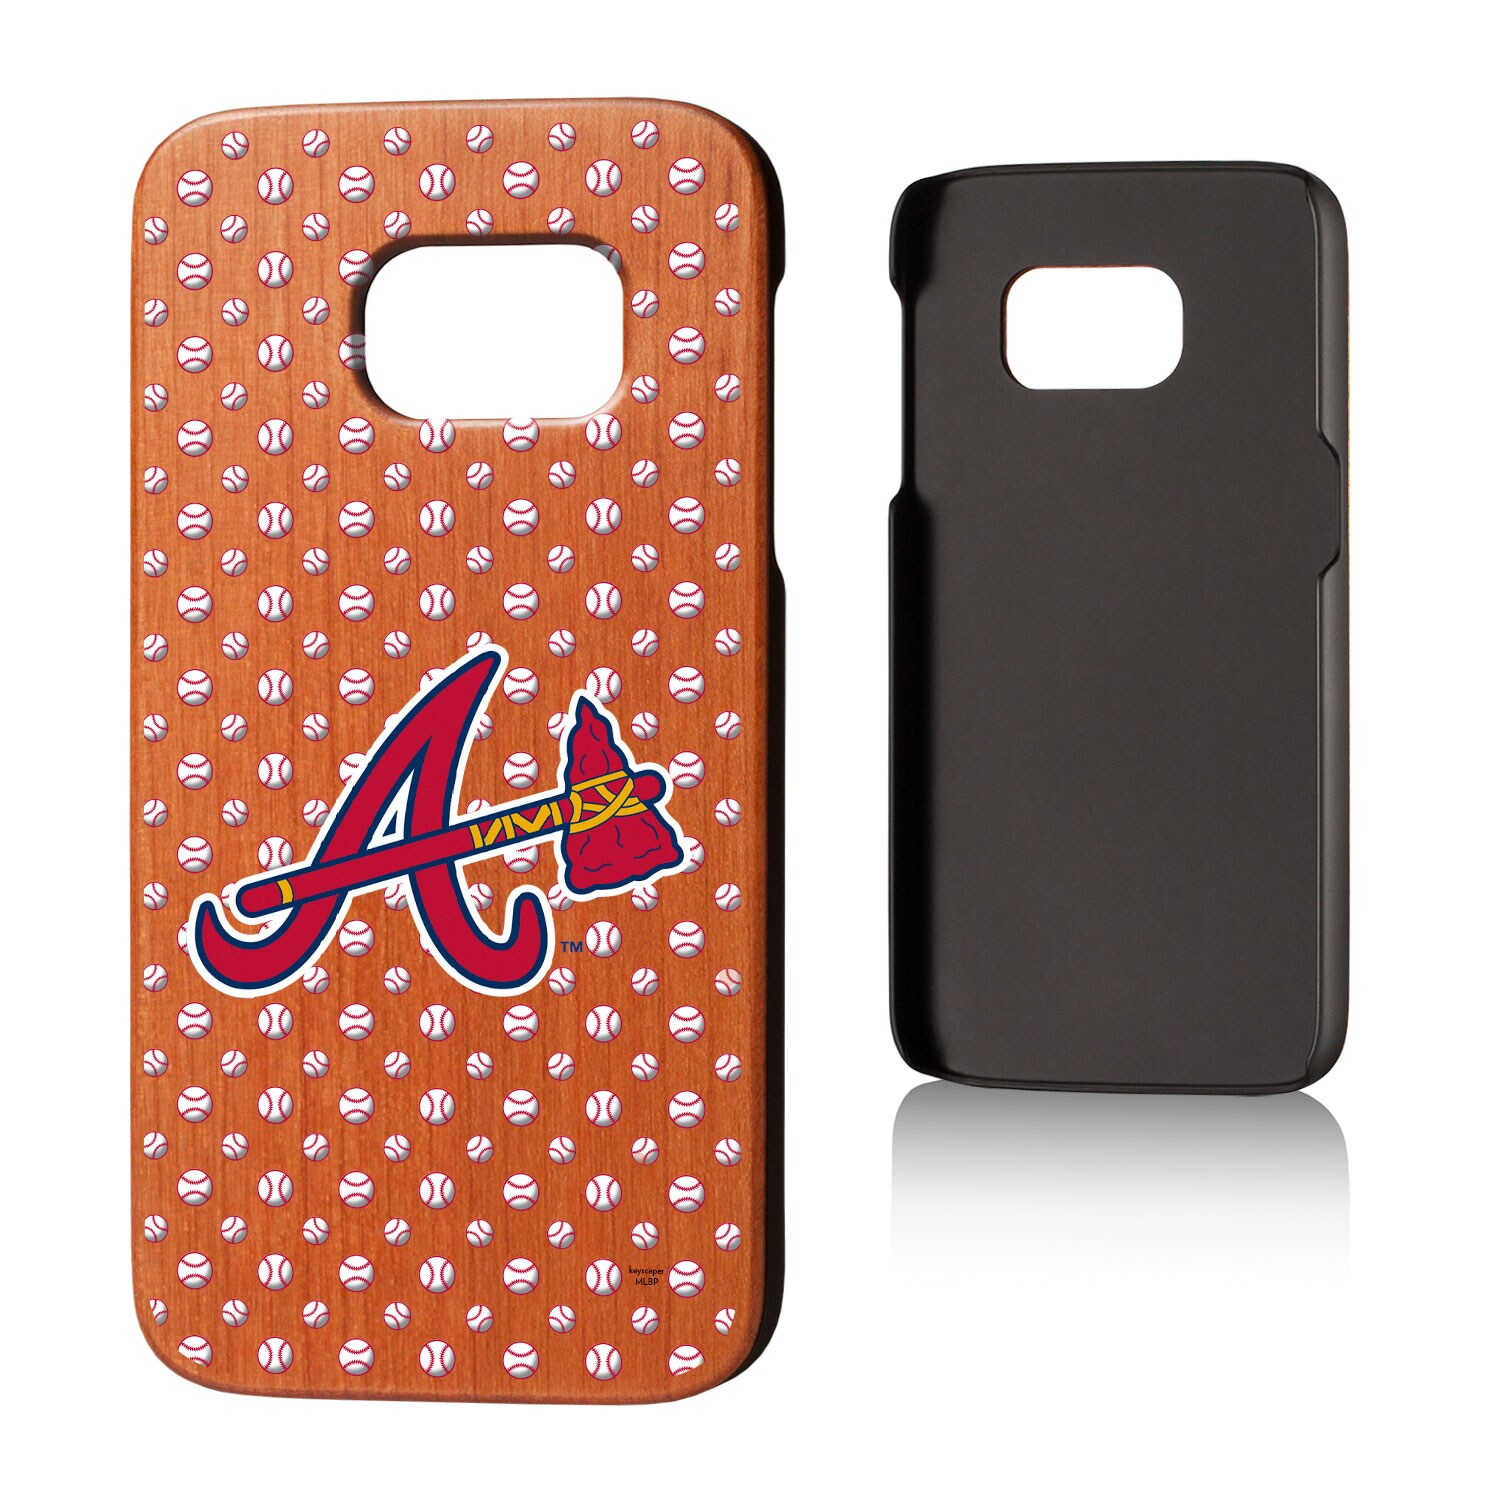 Atlanta Braves Galaxy S7 Cherry Wood Case